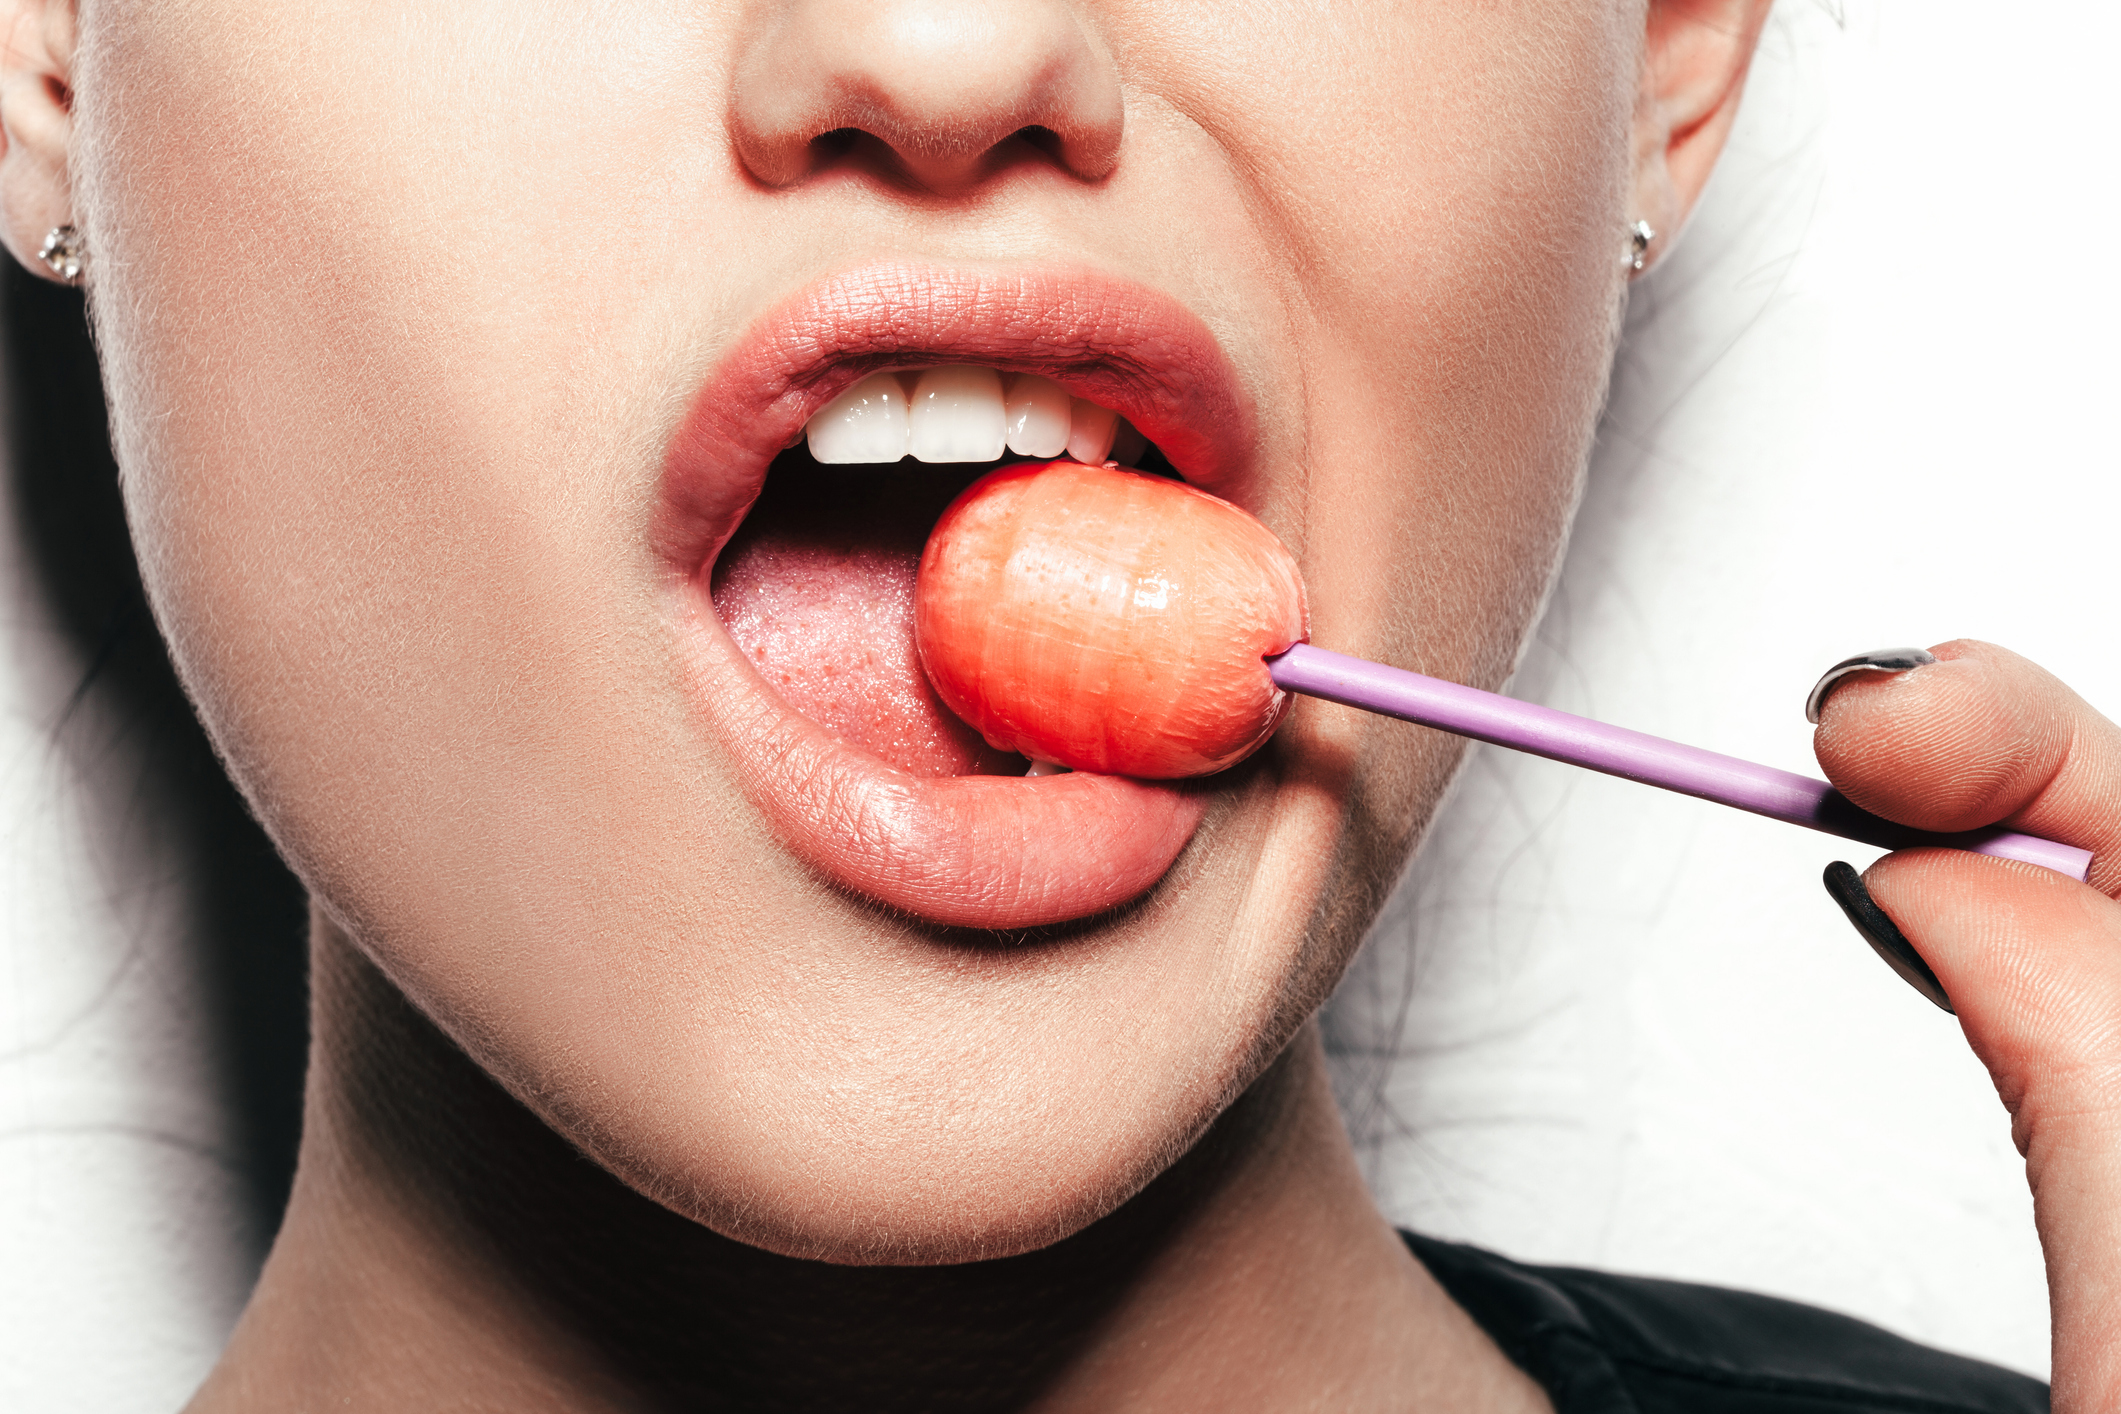 Woman licking a red shiny lollipop. Close up against white background, not isolated